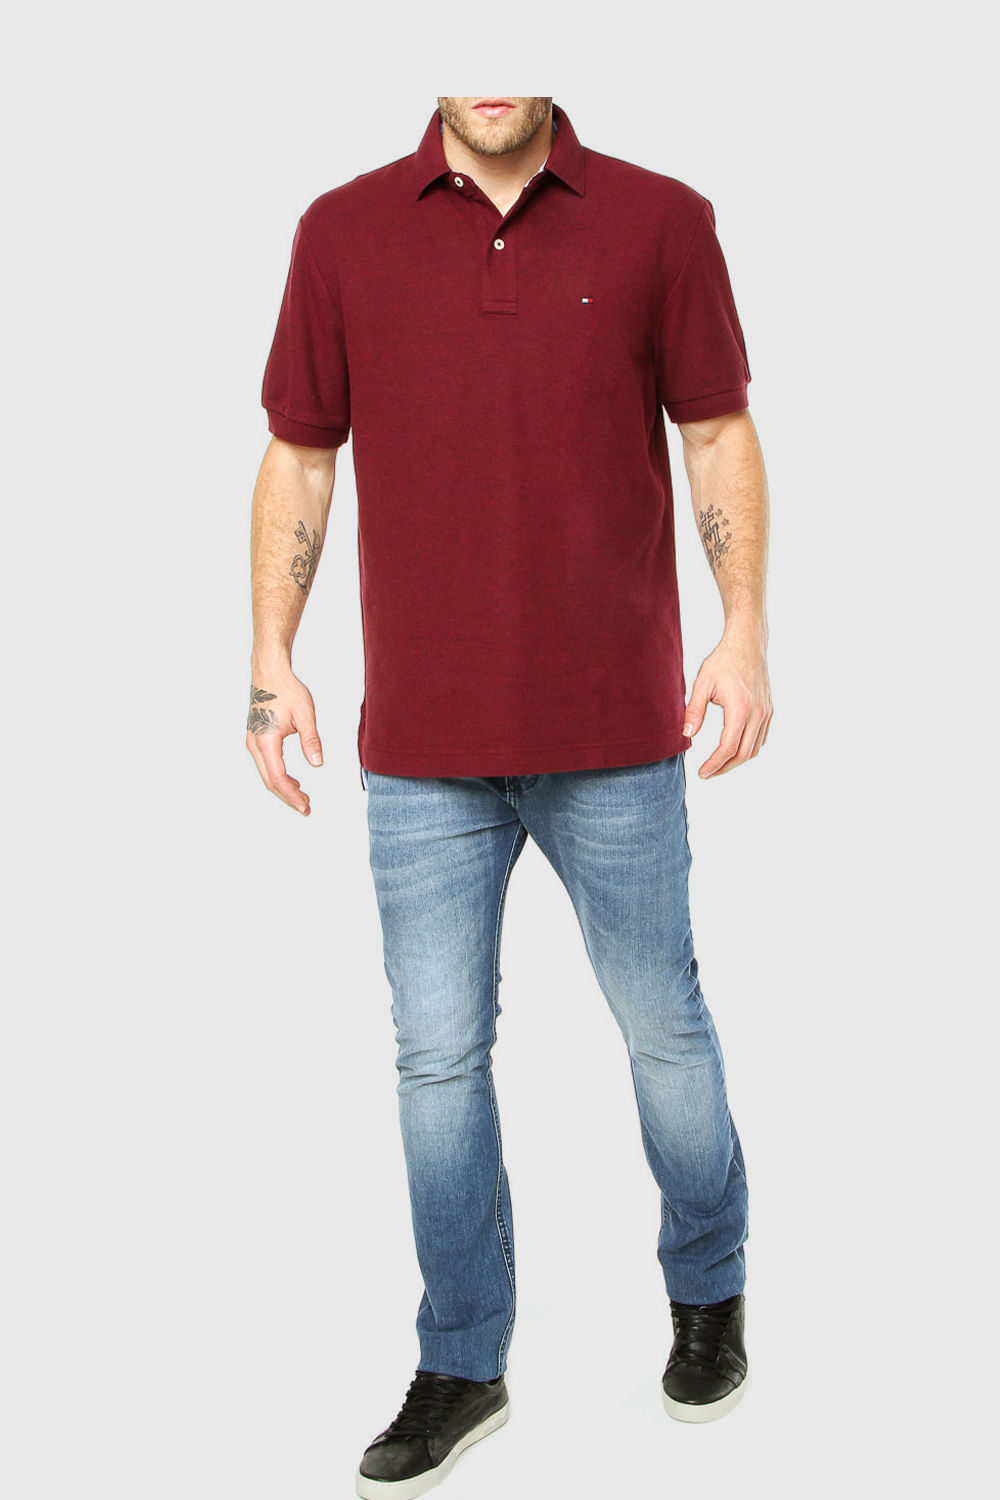 3493b53312 Camisa Polo Tommy Custom Fit Bordo - Carmim Modas